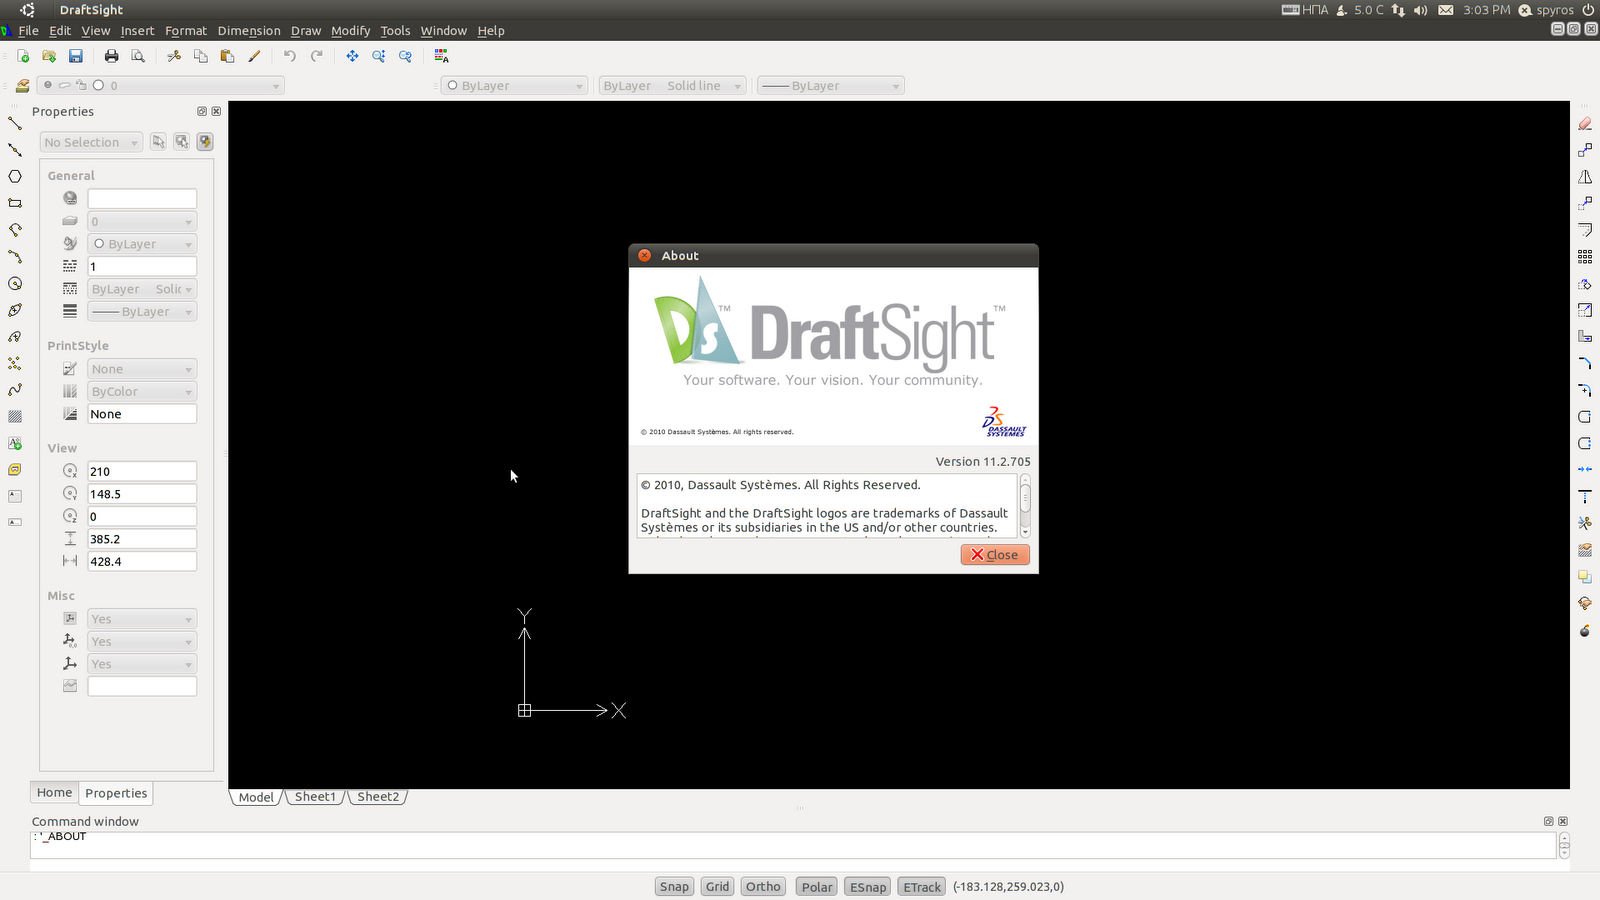 How to Install DraftSight on Ubuntu 16.04 Xenial LTS - UI